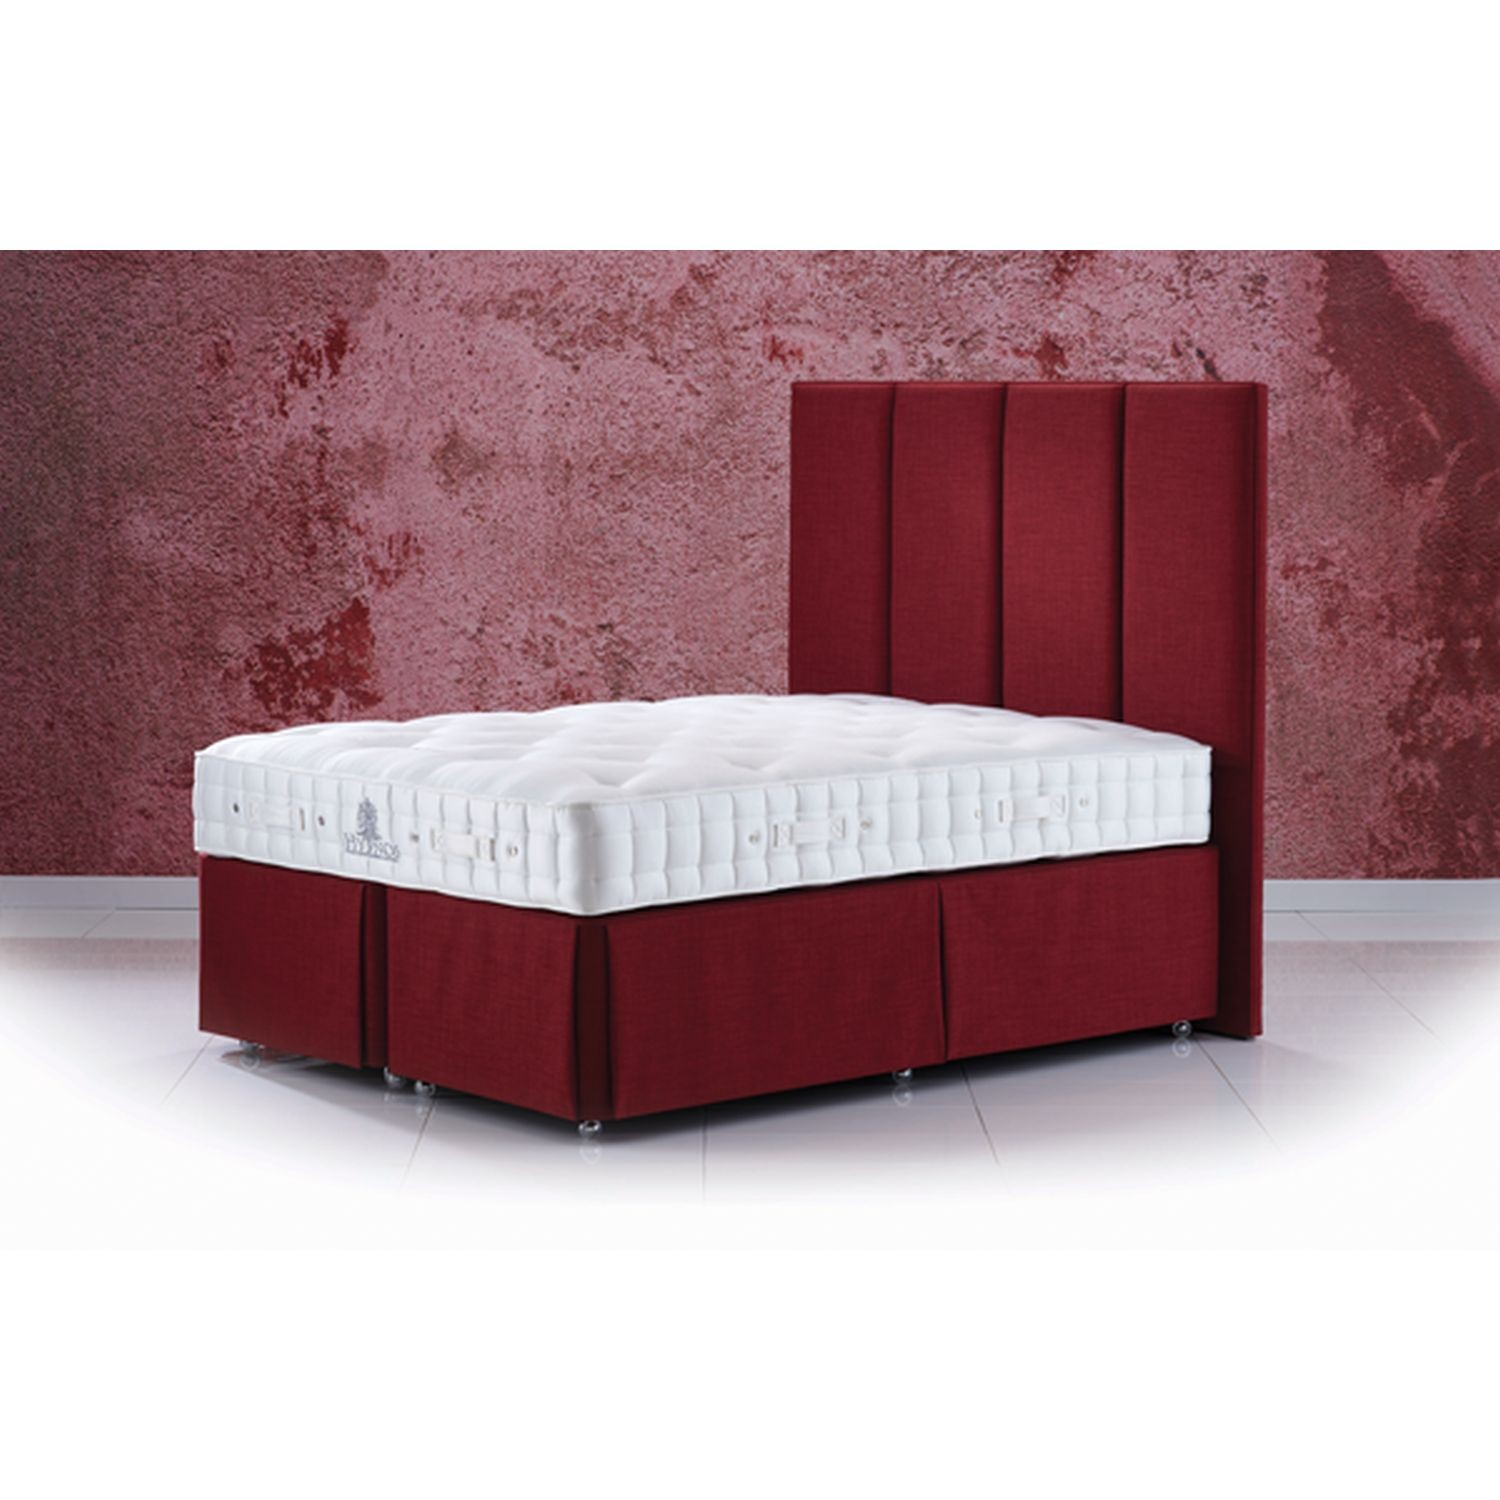 Hypnos luxury superb small double deep divan set leekes for Small double divan set